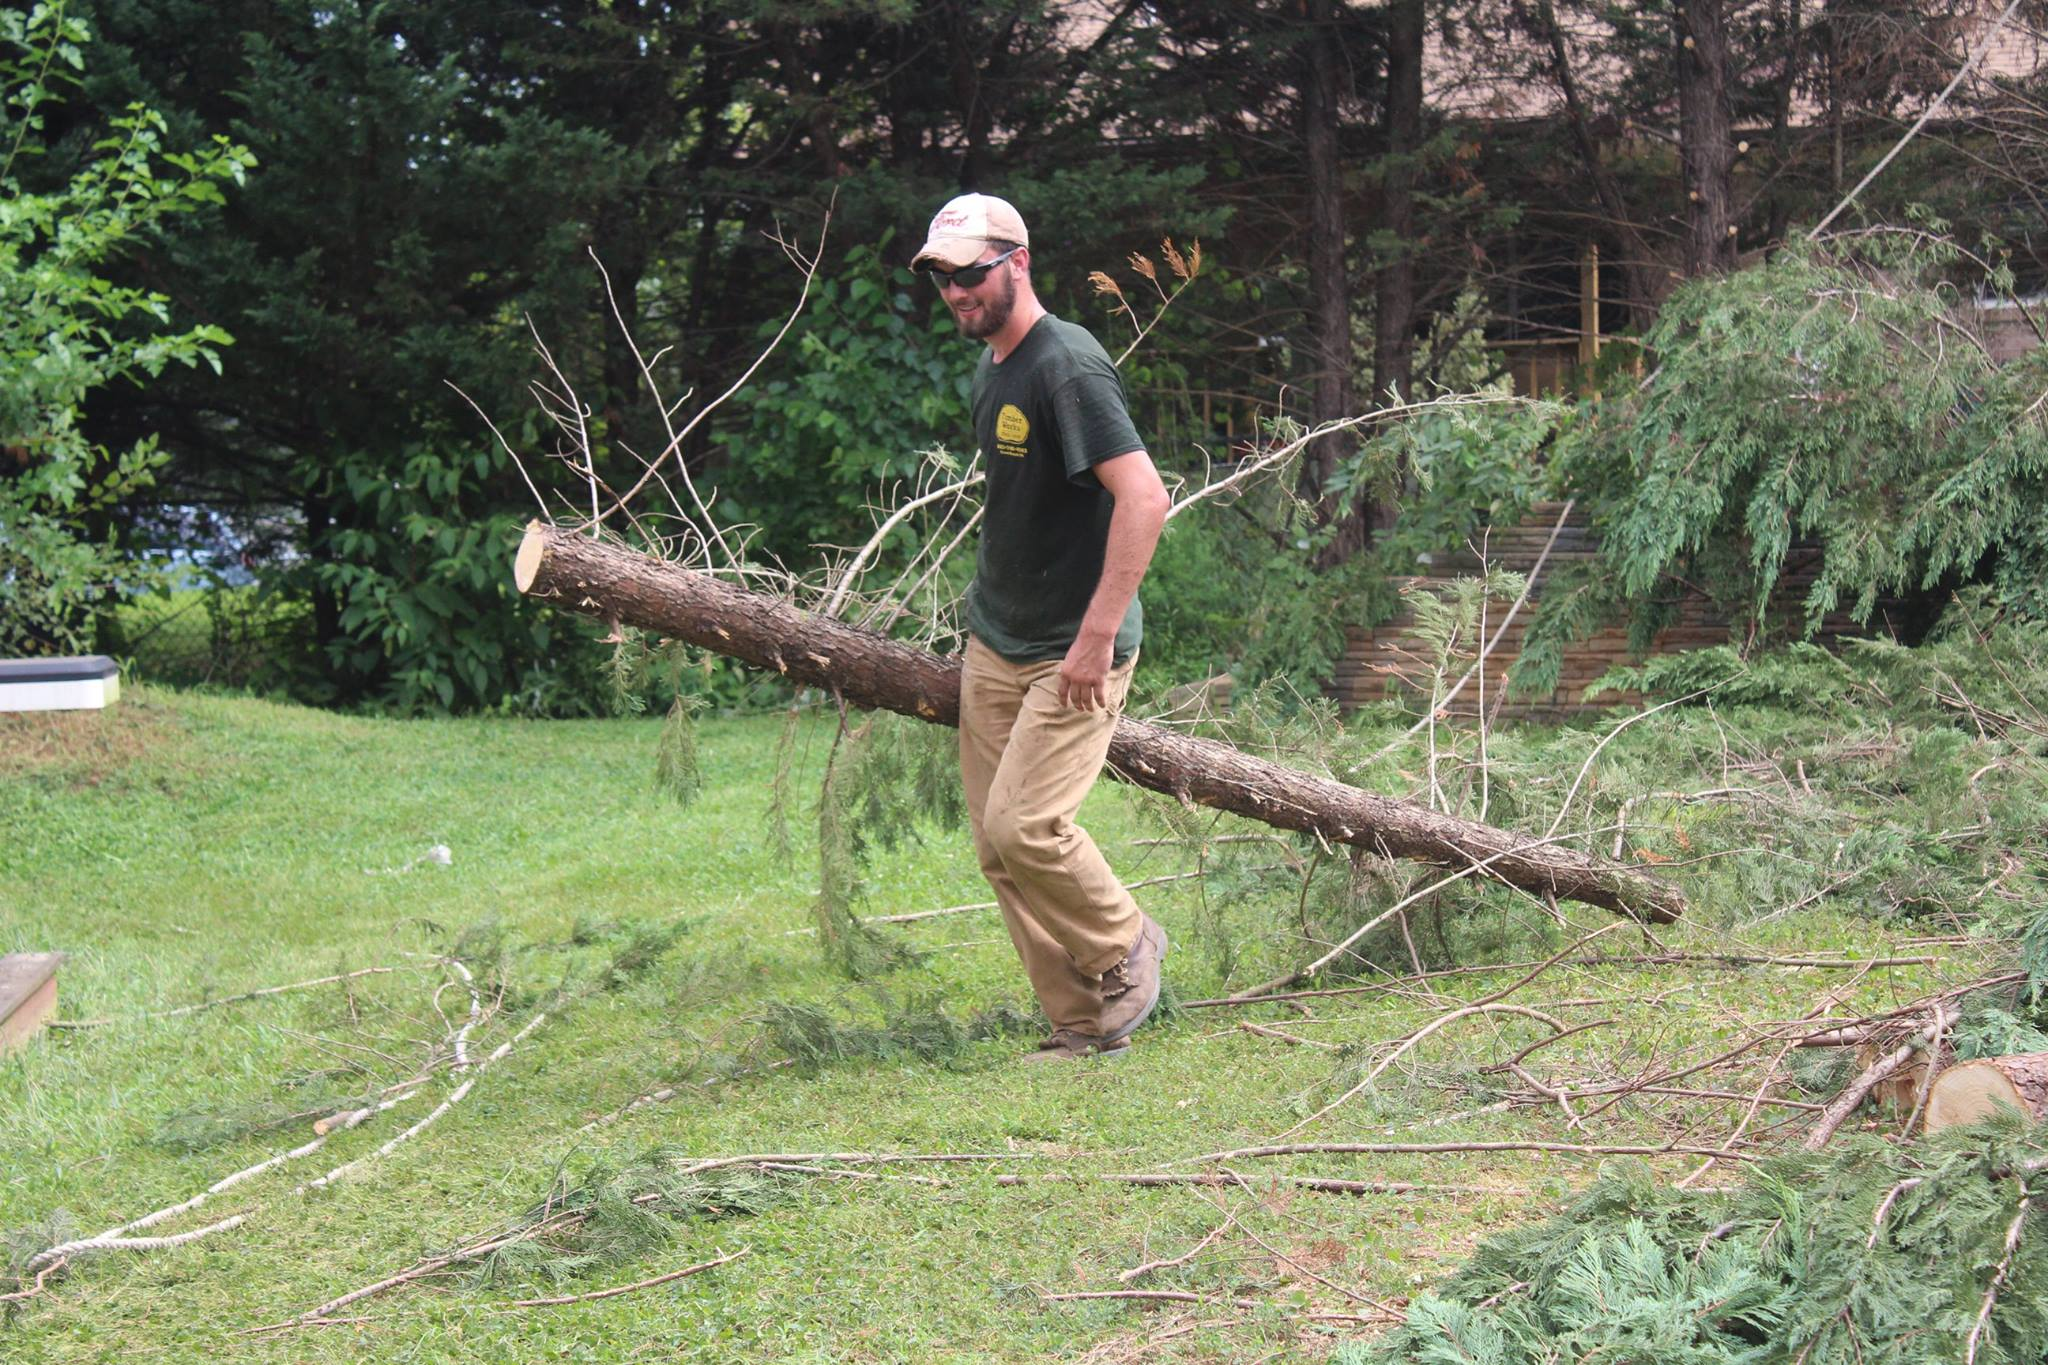 Warrenton Tree Service